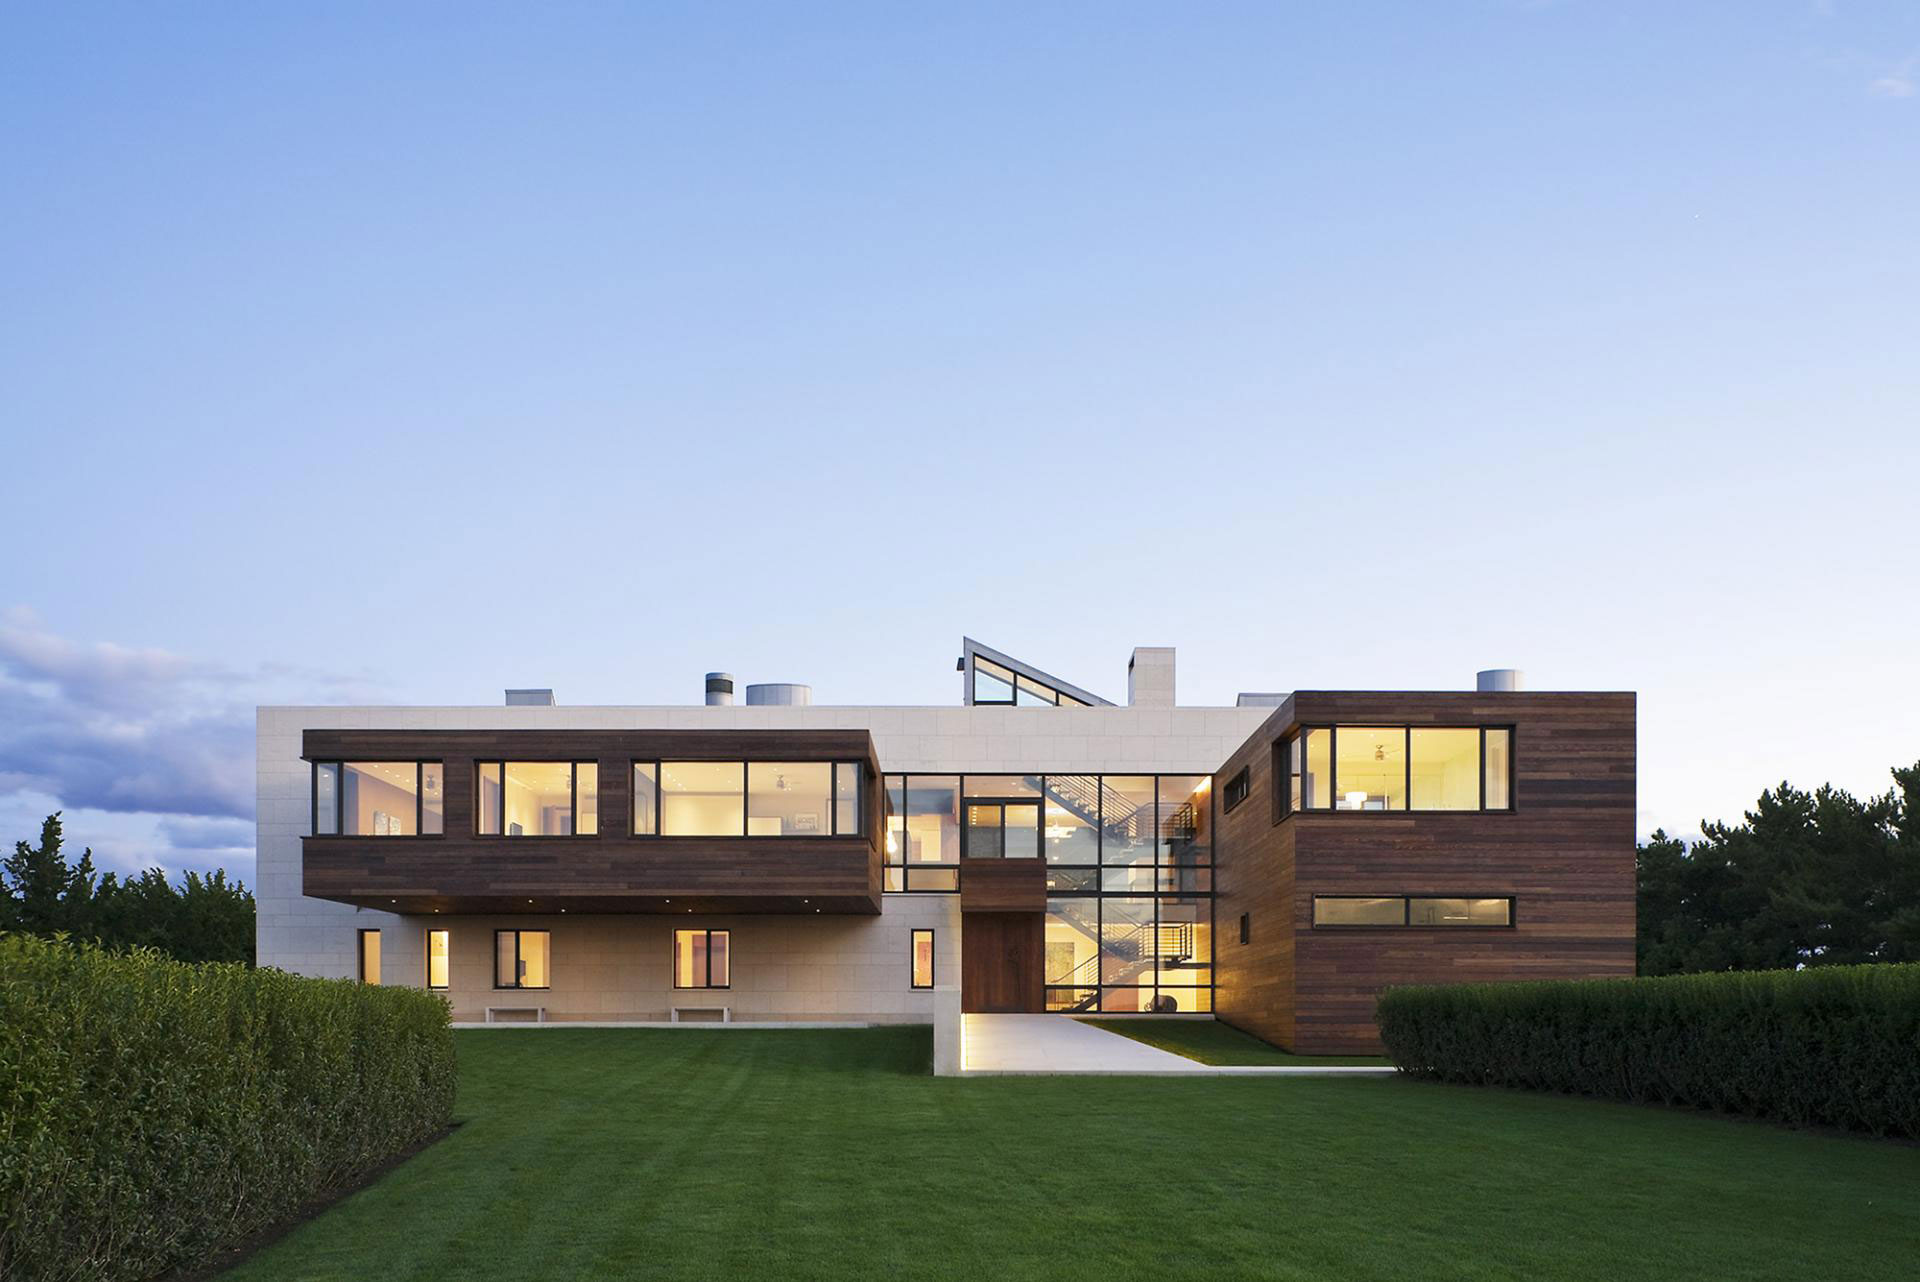 Luxurious summer retreat in southampton new york New modern houses for sale